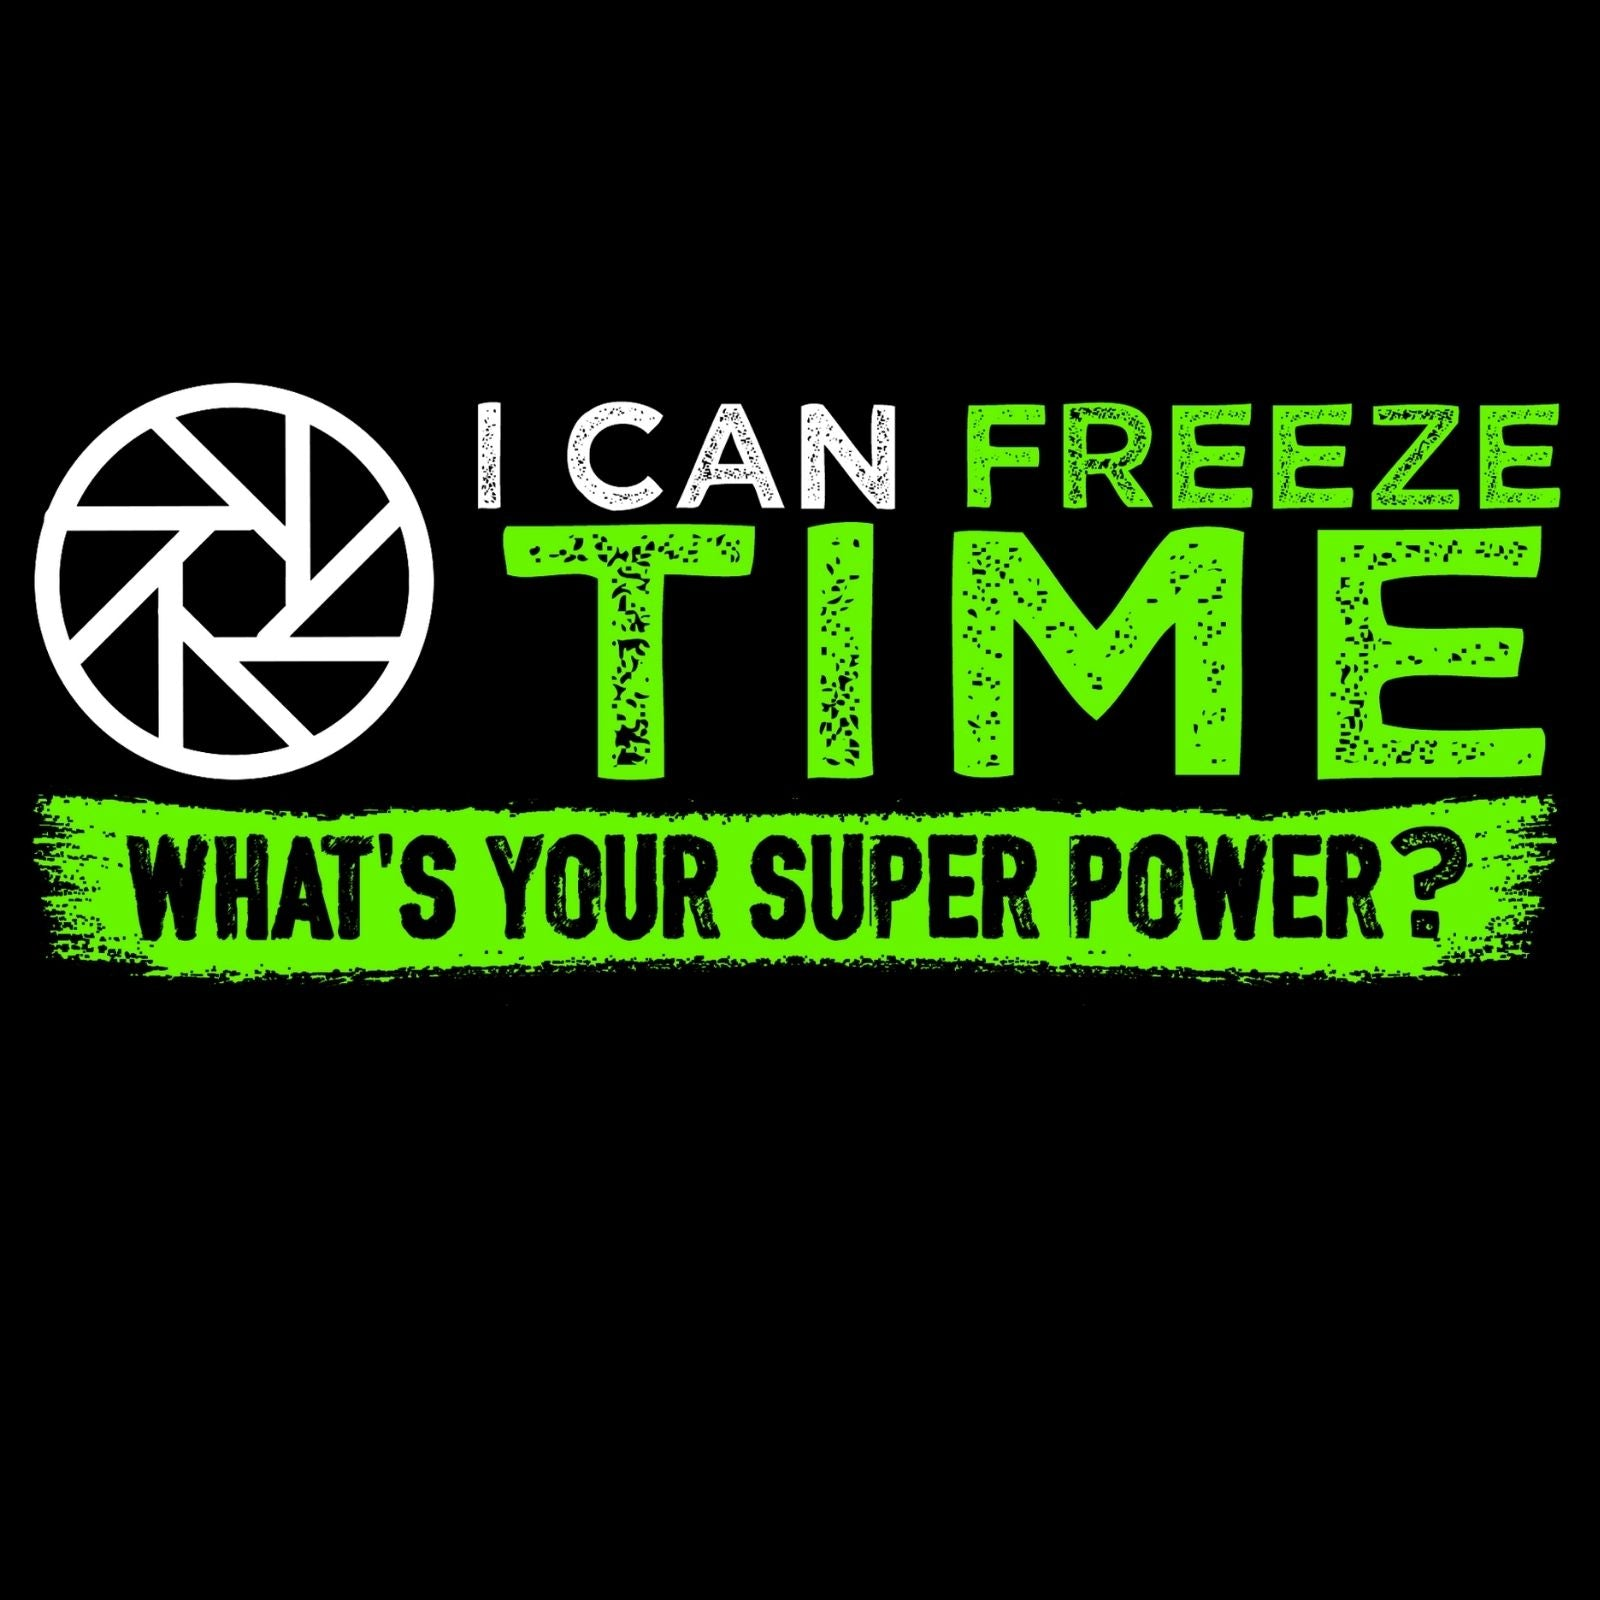 I Can Freeze Time What's Your Super Power? - Bastard Graphics